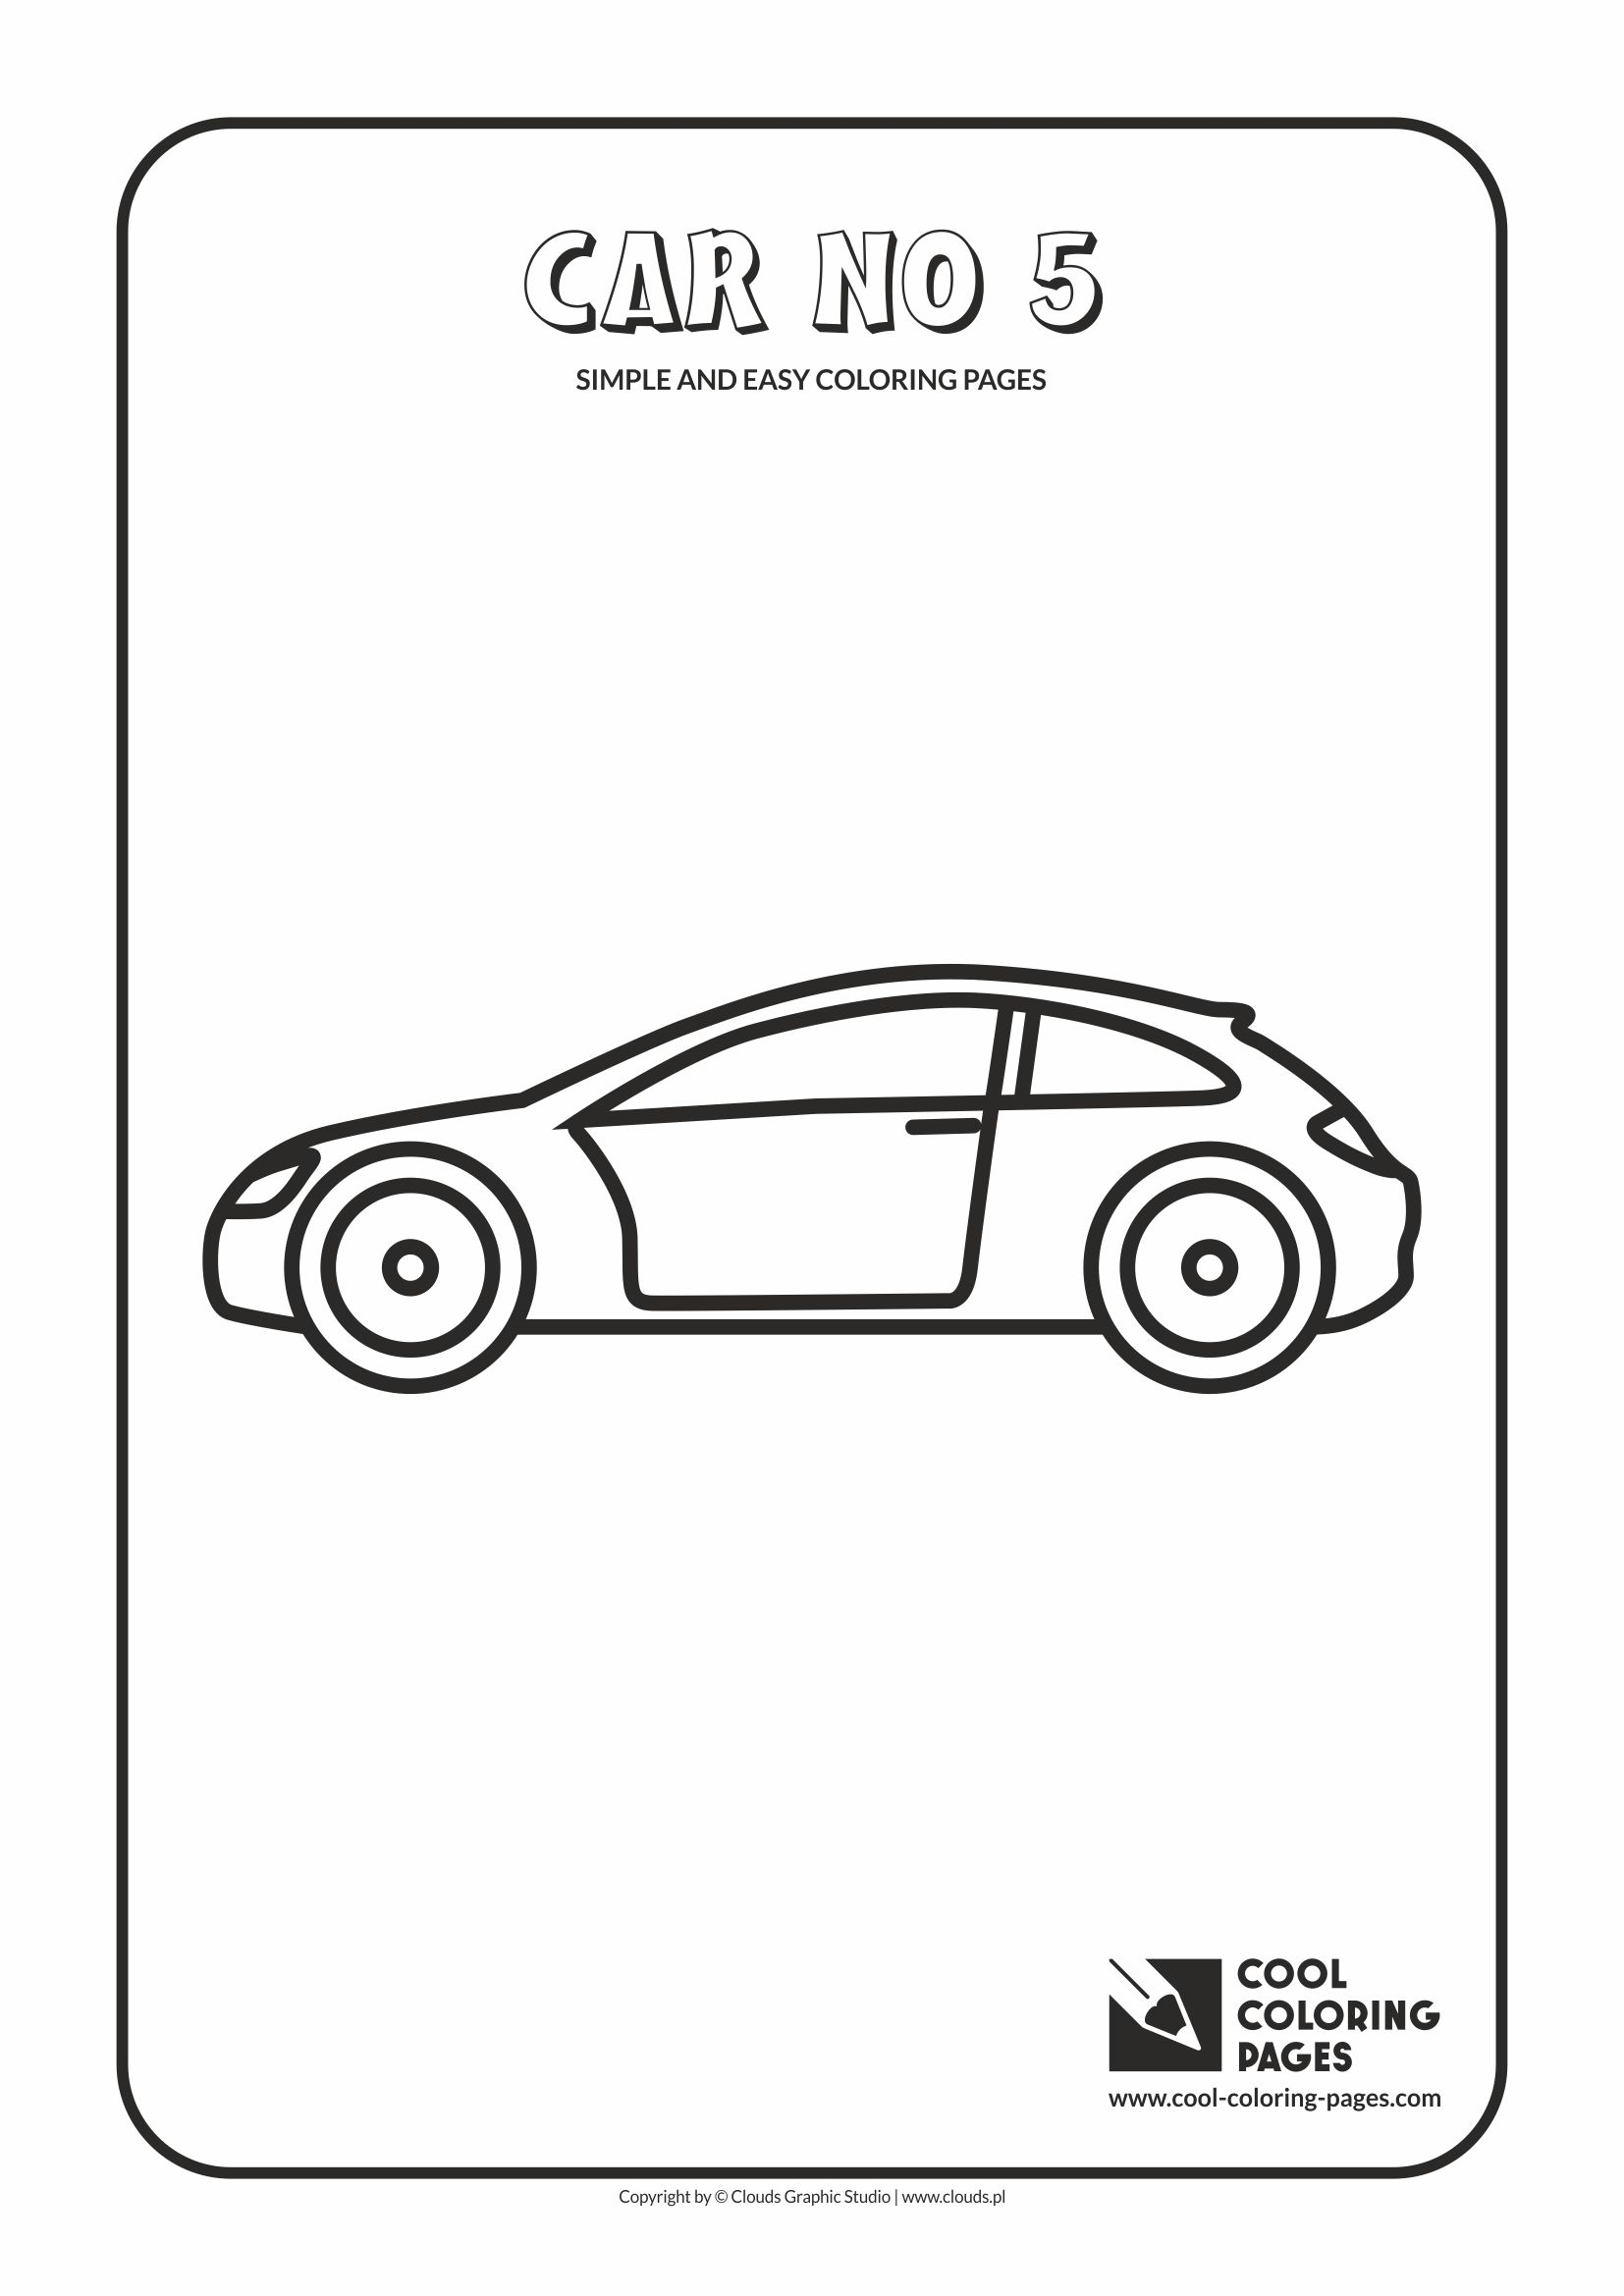 Simple and easy coloring pages for toddlers - Car no 5